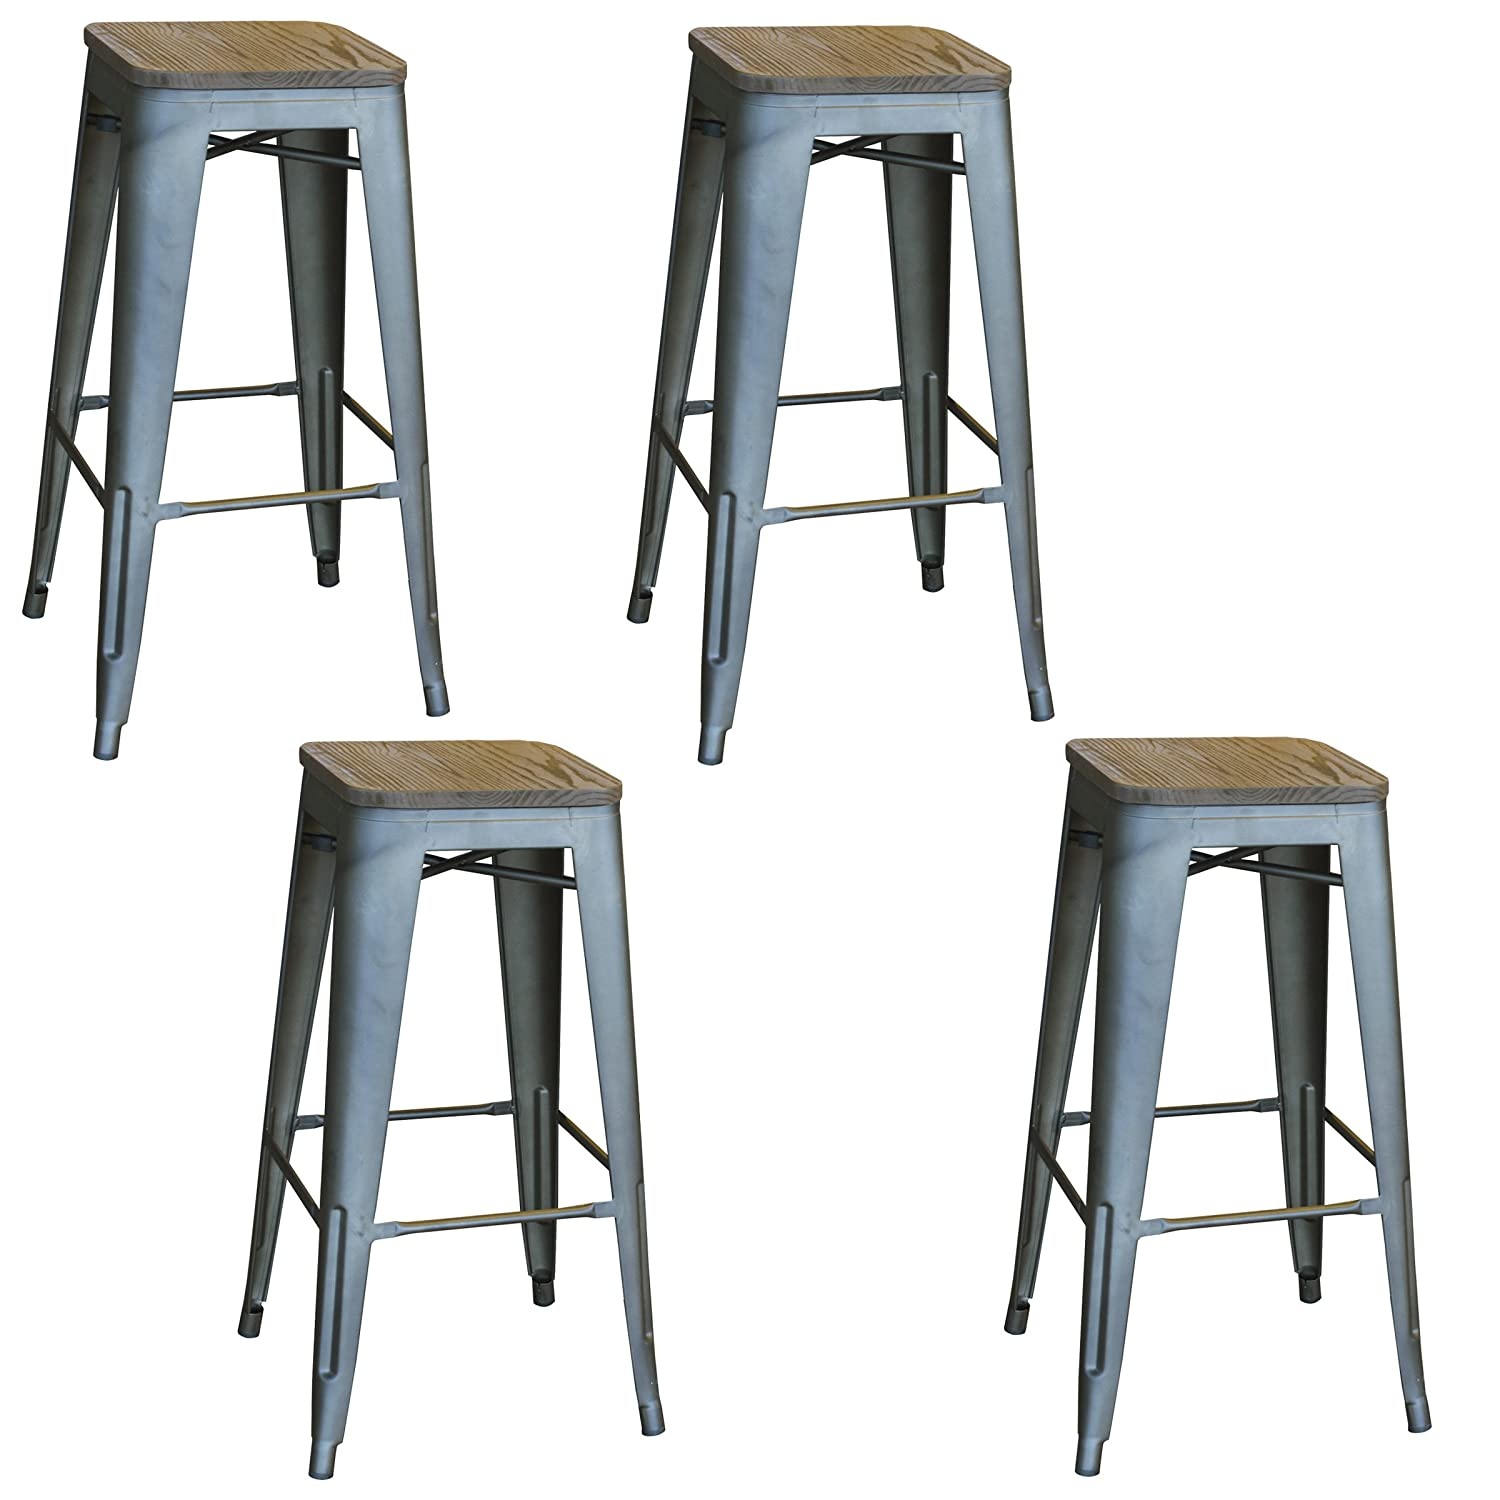 Amazon.com AmeriHome BS030SWTSET 4 Piece Loft Rustic Gunmetal Metal Bar Stool with Wood Seat Kitchen u0026 Dining  sc 1 st  Amazon.com & Amazon.com: AmeriHome BS030SWTSET 4 Piece Loft Rustic Gunmetal ... islam-shia.org